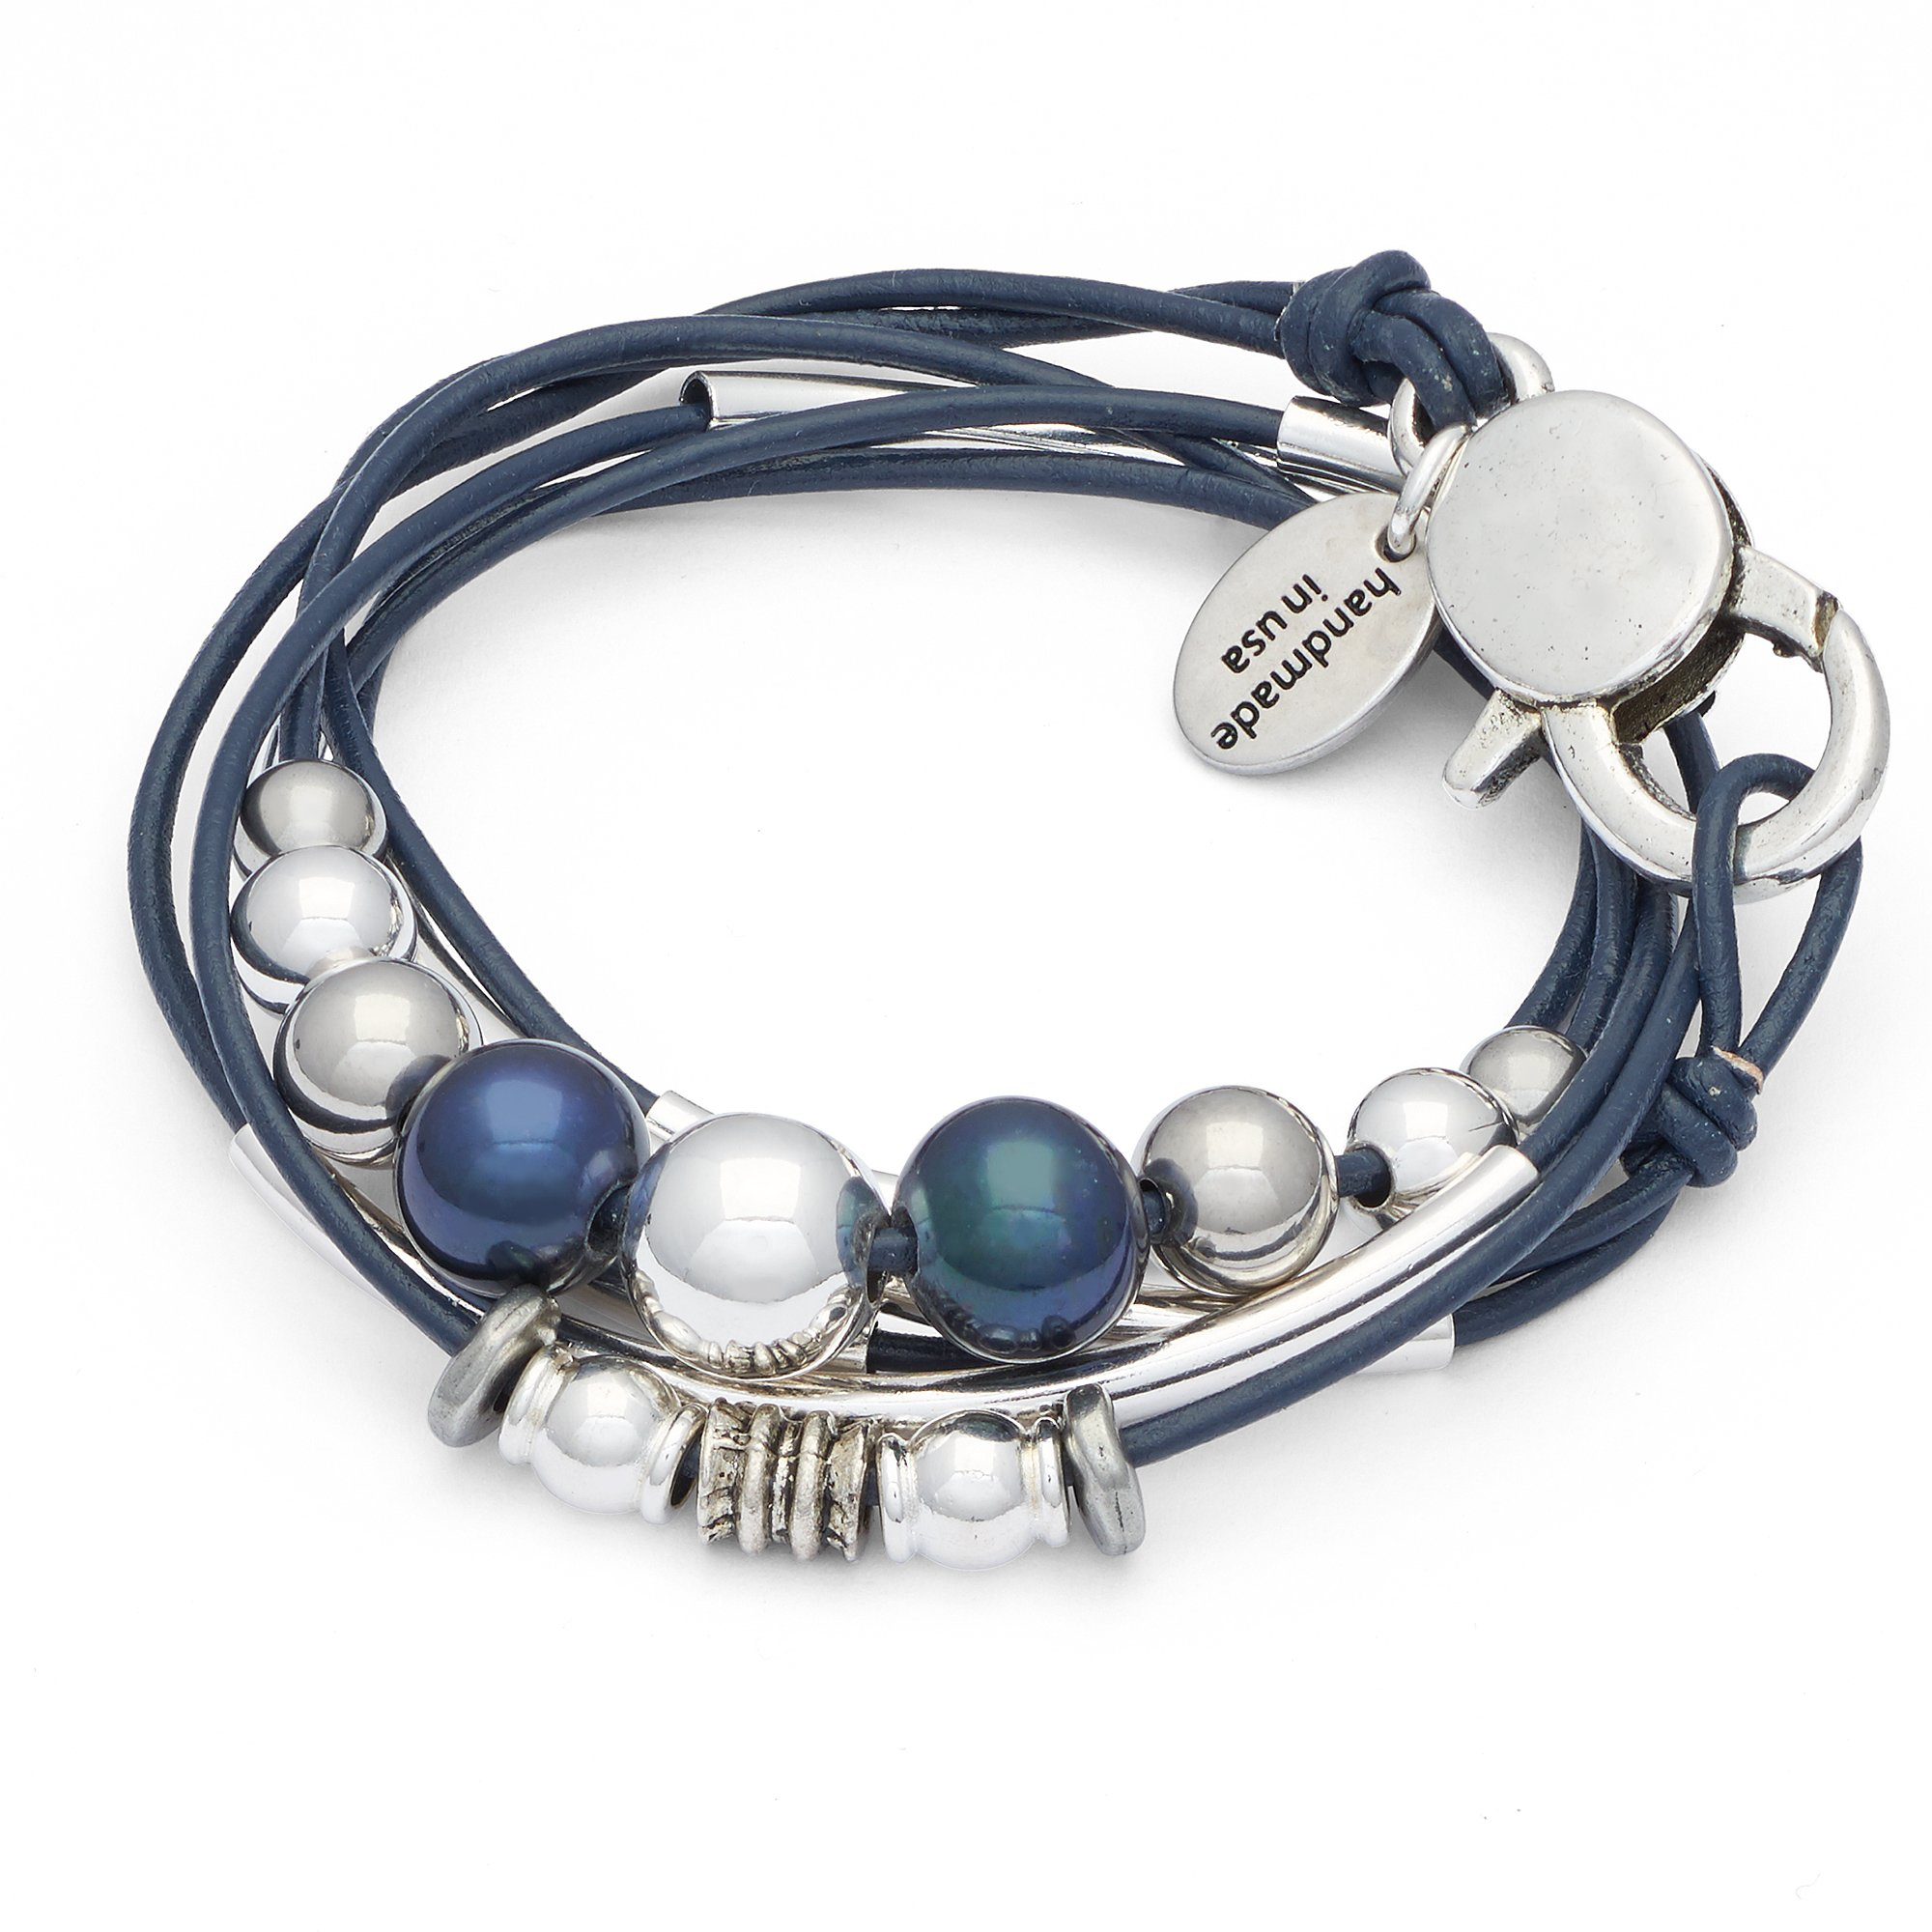 Lizzy James Mia 2 Strand Wrap Bracelet Necklace in Gloss Navy Leather (Large) by Lizzy James